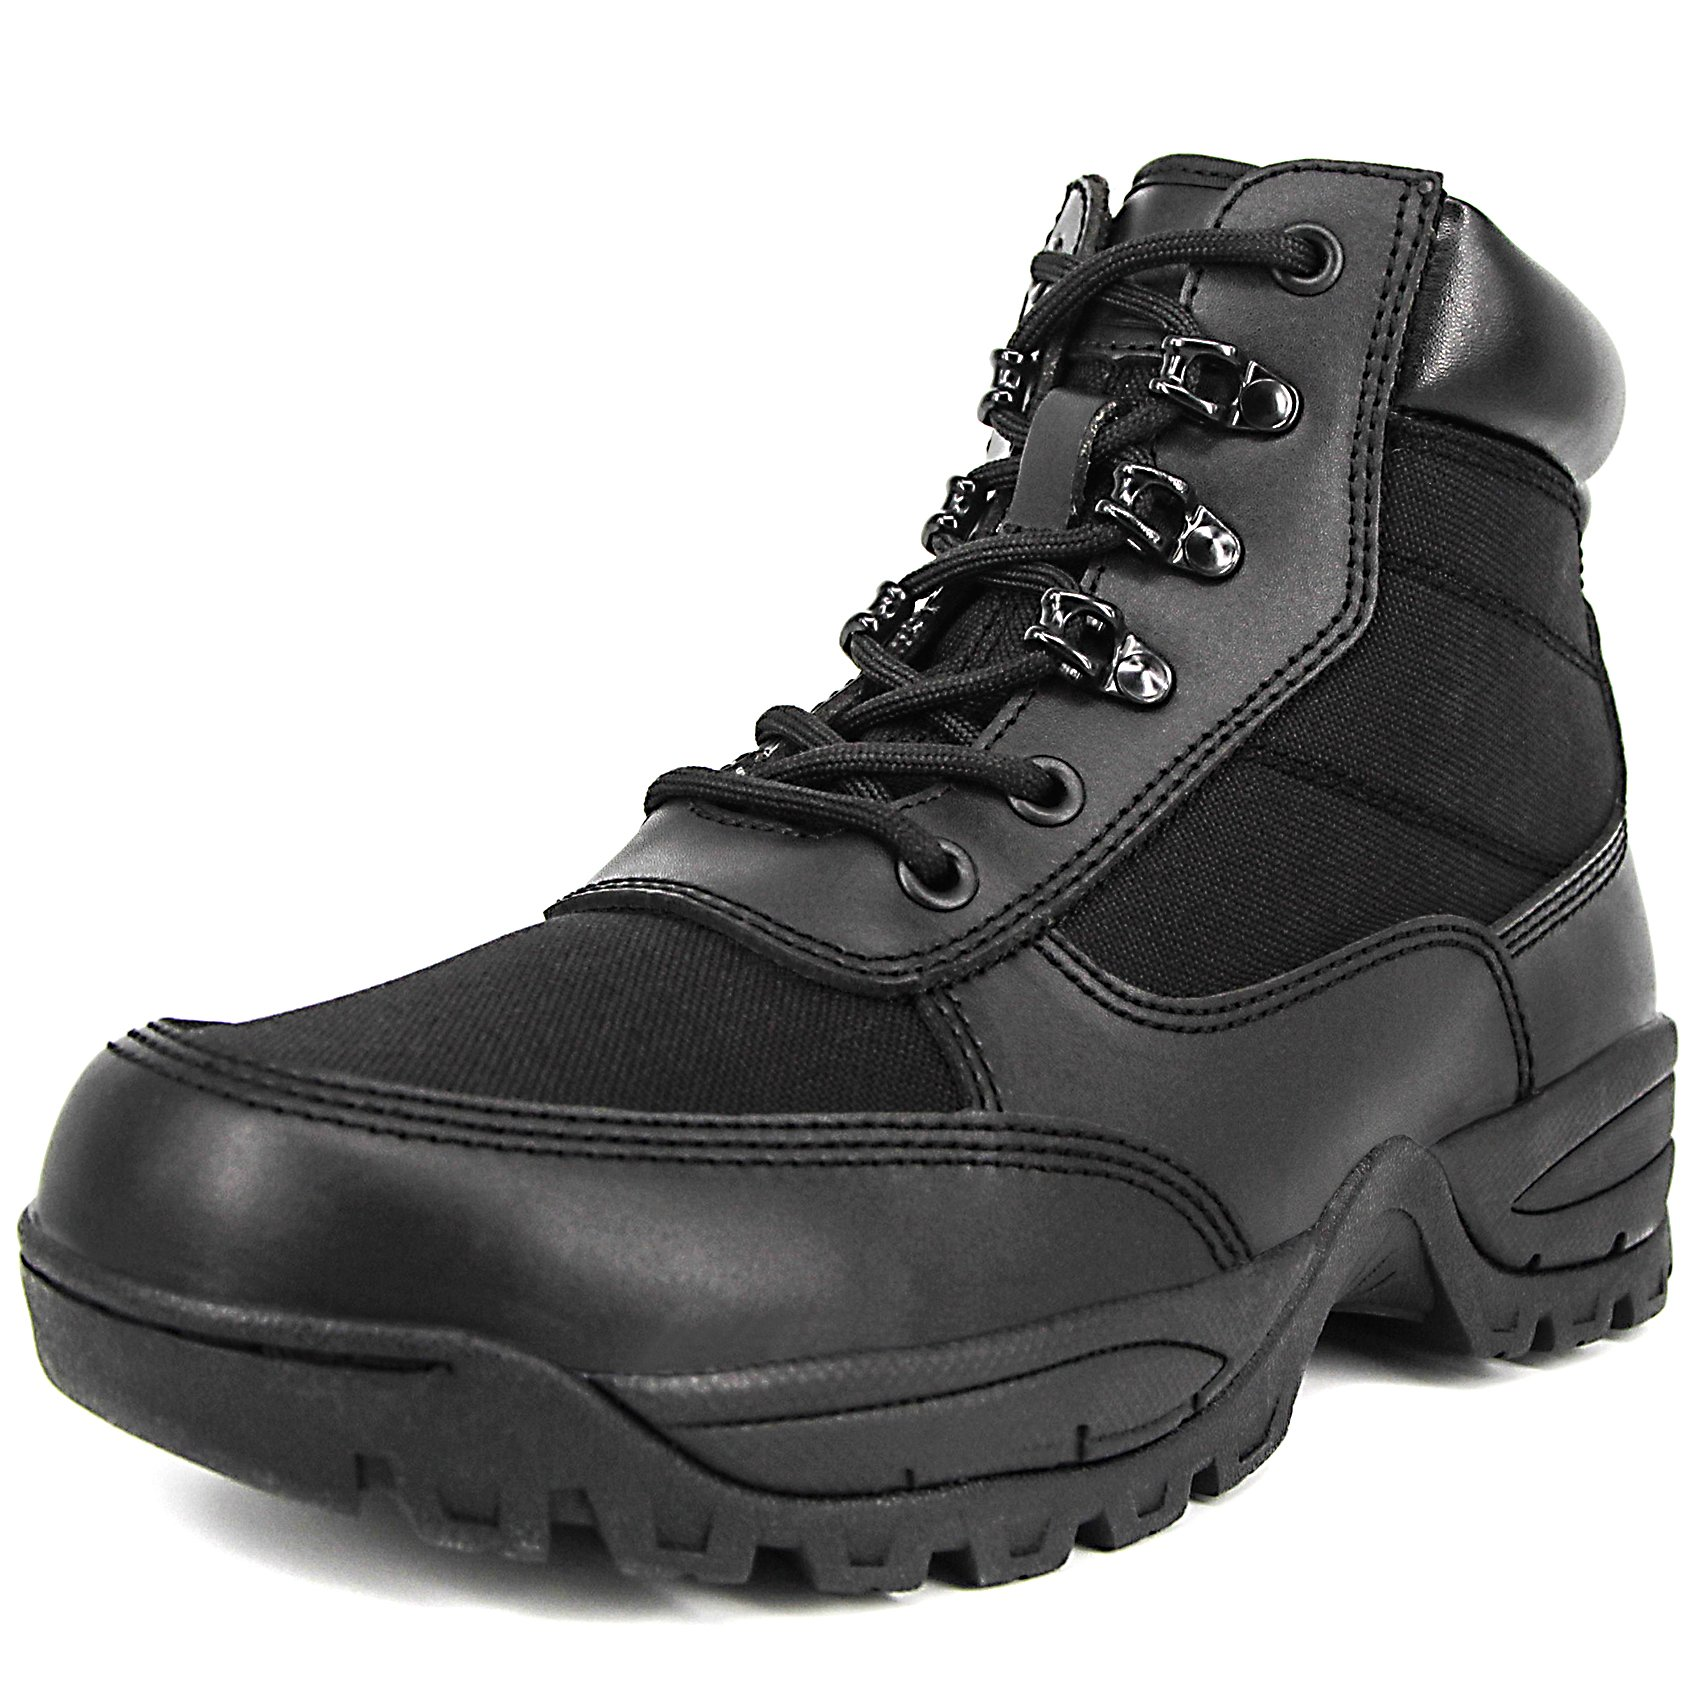 Milforce Men's 6 inch Military Tactical Ankle Boots Lightweight Police Duty Work Shoes with Side Zipper, Black (10 D (M) US)